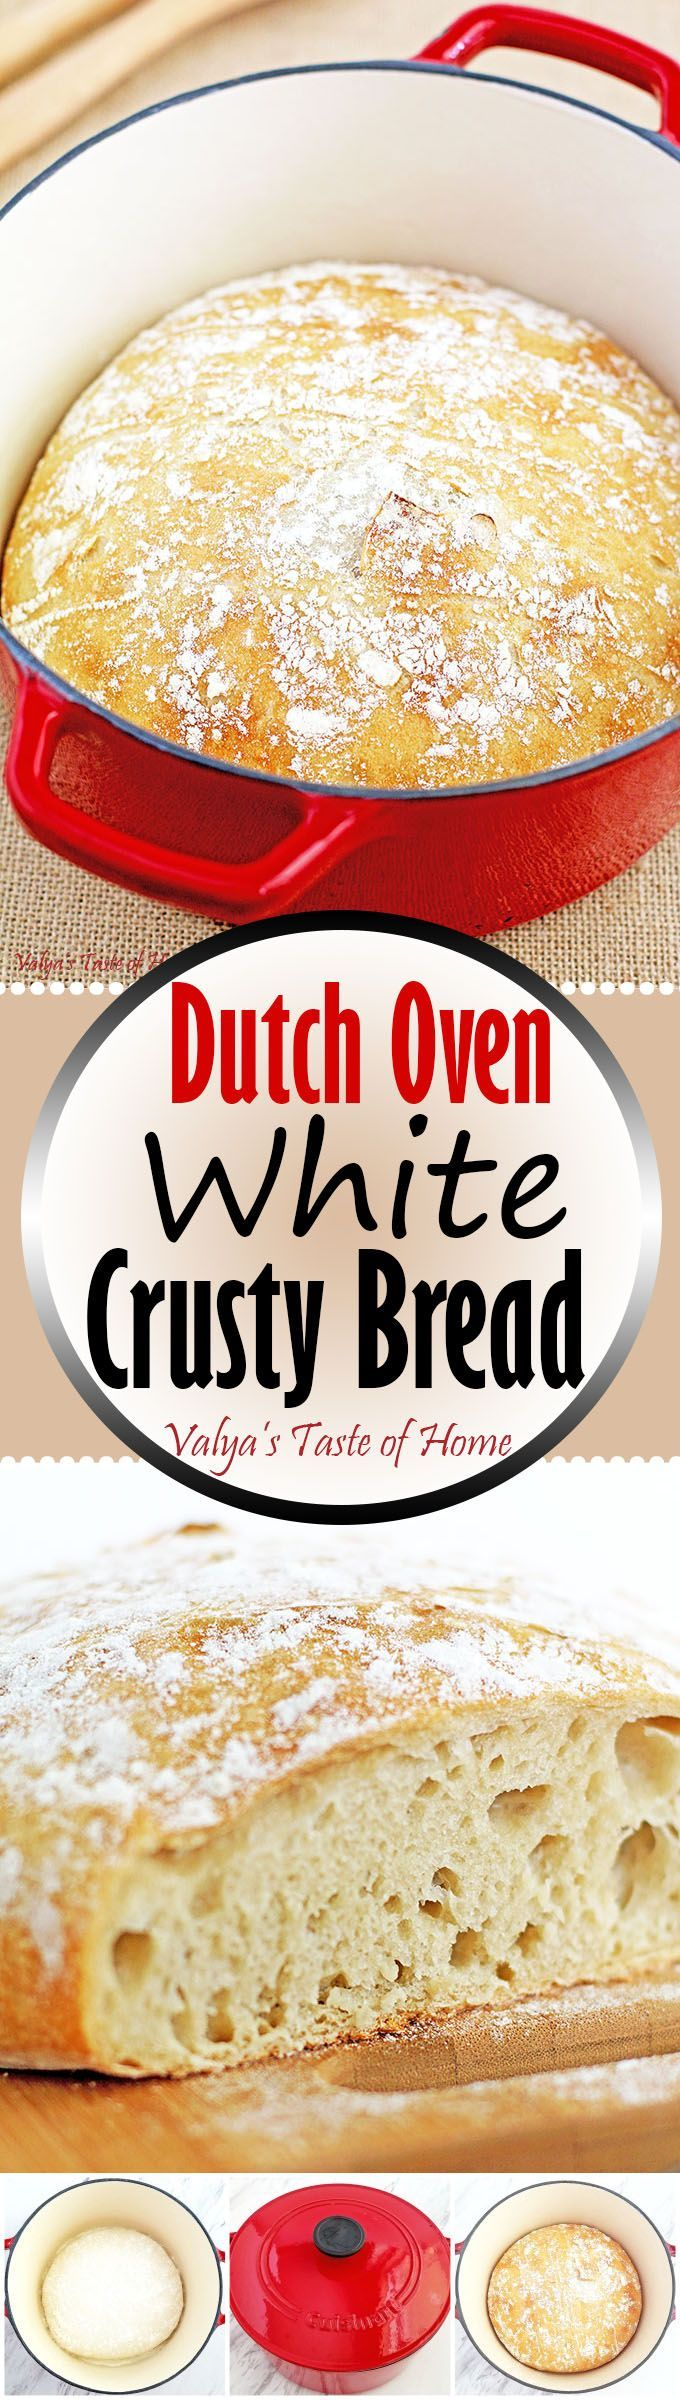 "Beautiful and wonderful tasting Dutch Oven White Crusty Bread Recipe! Bread making is a kind of an art, I would say. Making this absolutely delicious and unique bread in cast iron pot is fairly simple. A Dutch oven isn't the first thing that comes to mind in bread making, but this piece of an ""oven in pot"" is wonderfully versatile."